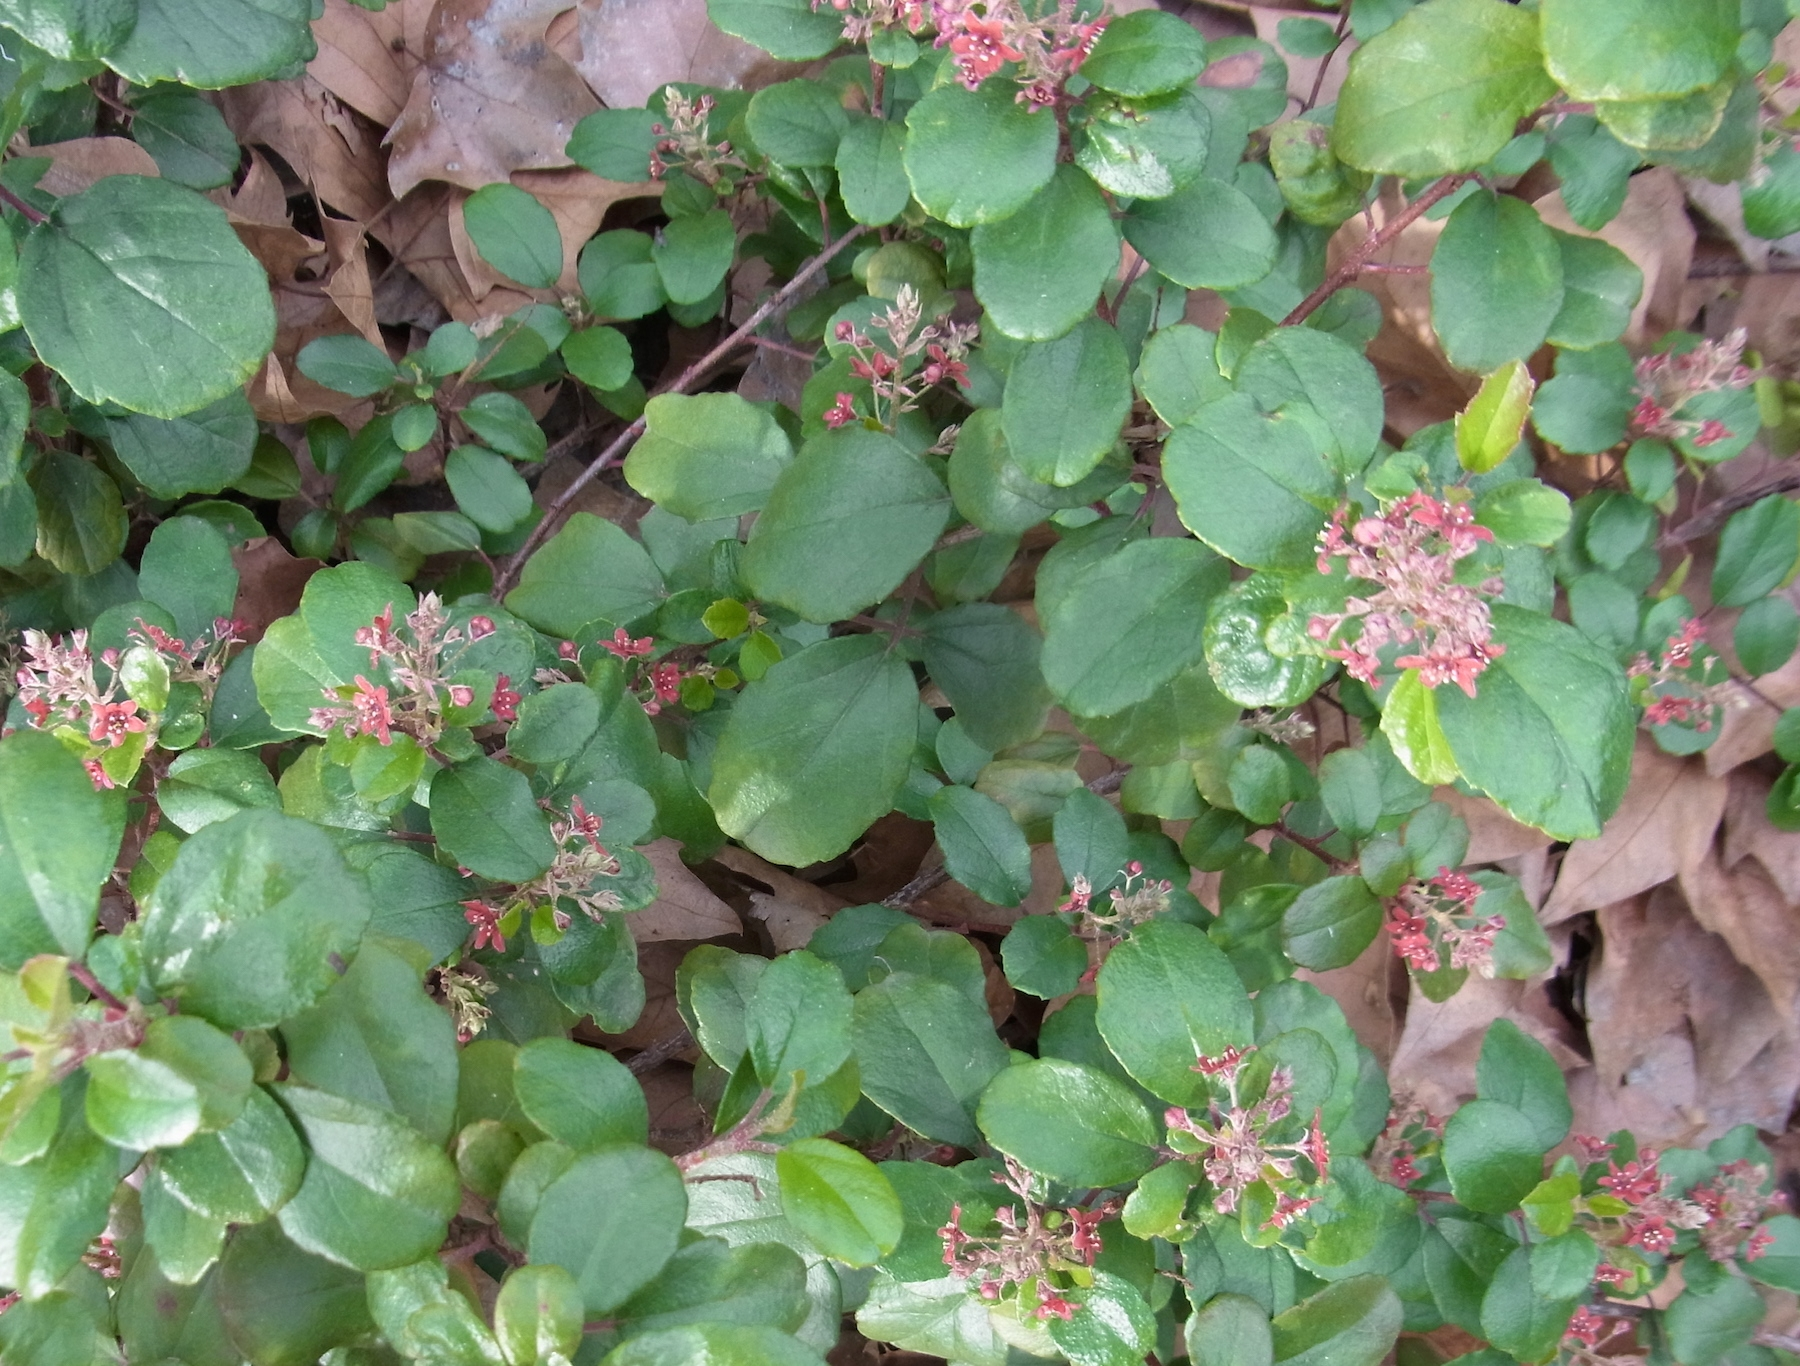 Evergreen Currant, Ribes Viburnifolium, In Bloom This Plant Grows To  Create Dense Mats And Makes A Good Groundcover Under Native Oaks